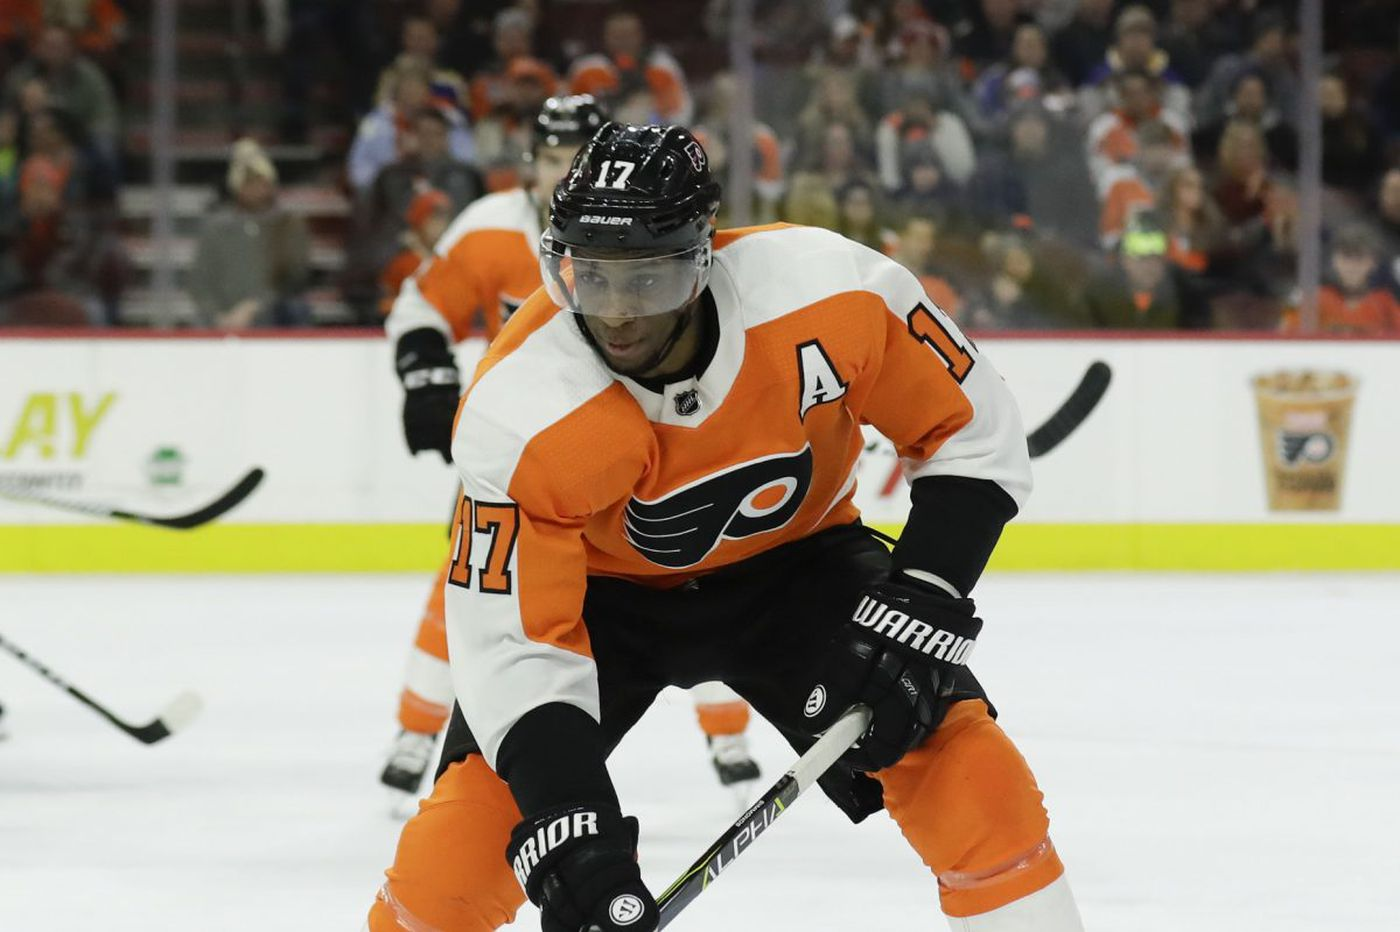 Flyers-Rangers preview: Two teams going in different directions